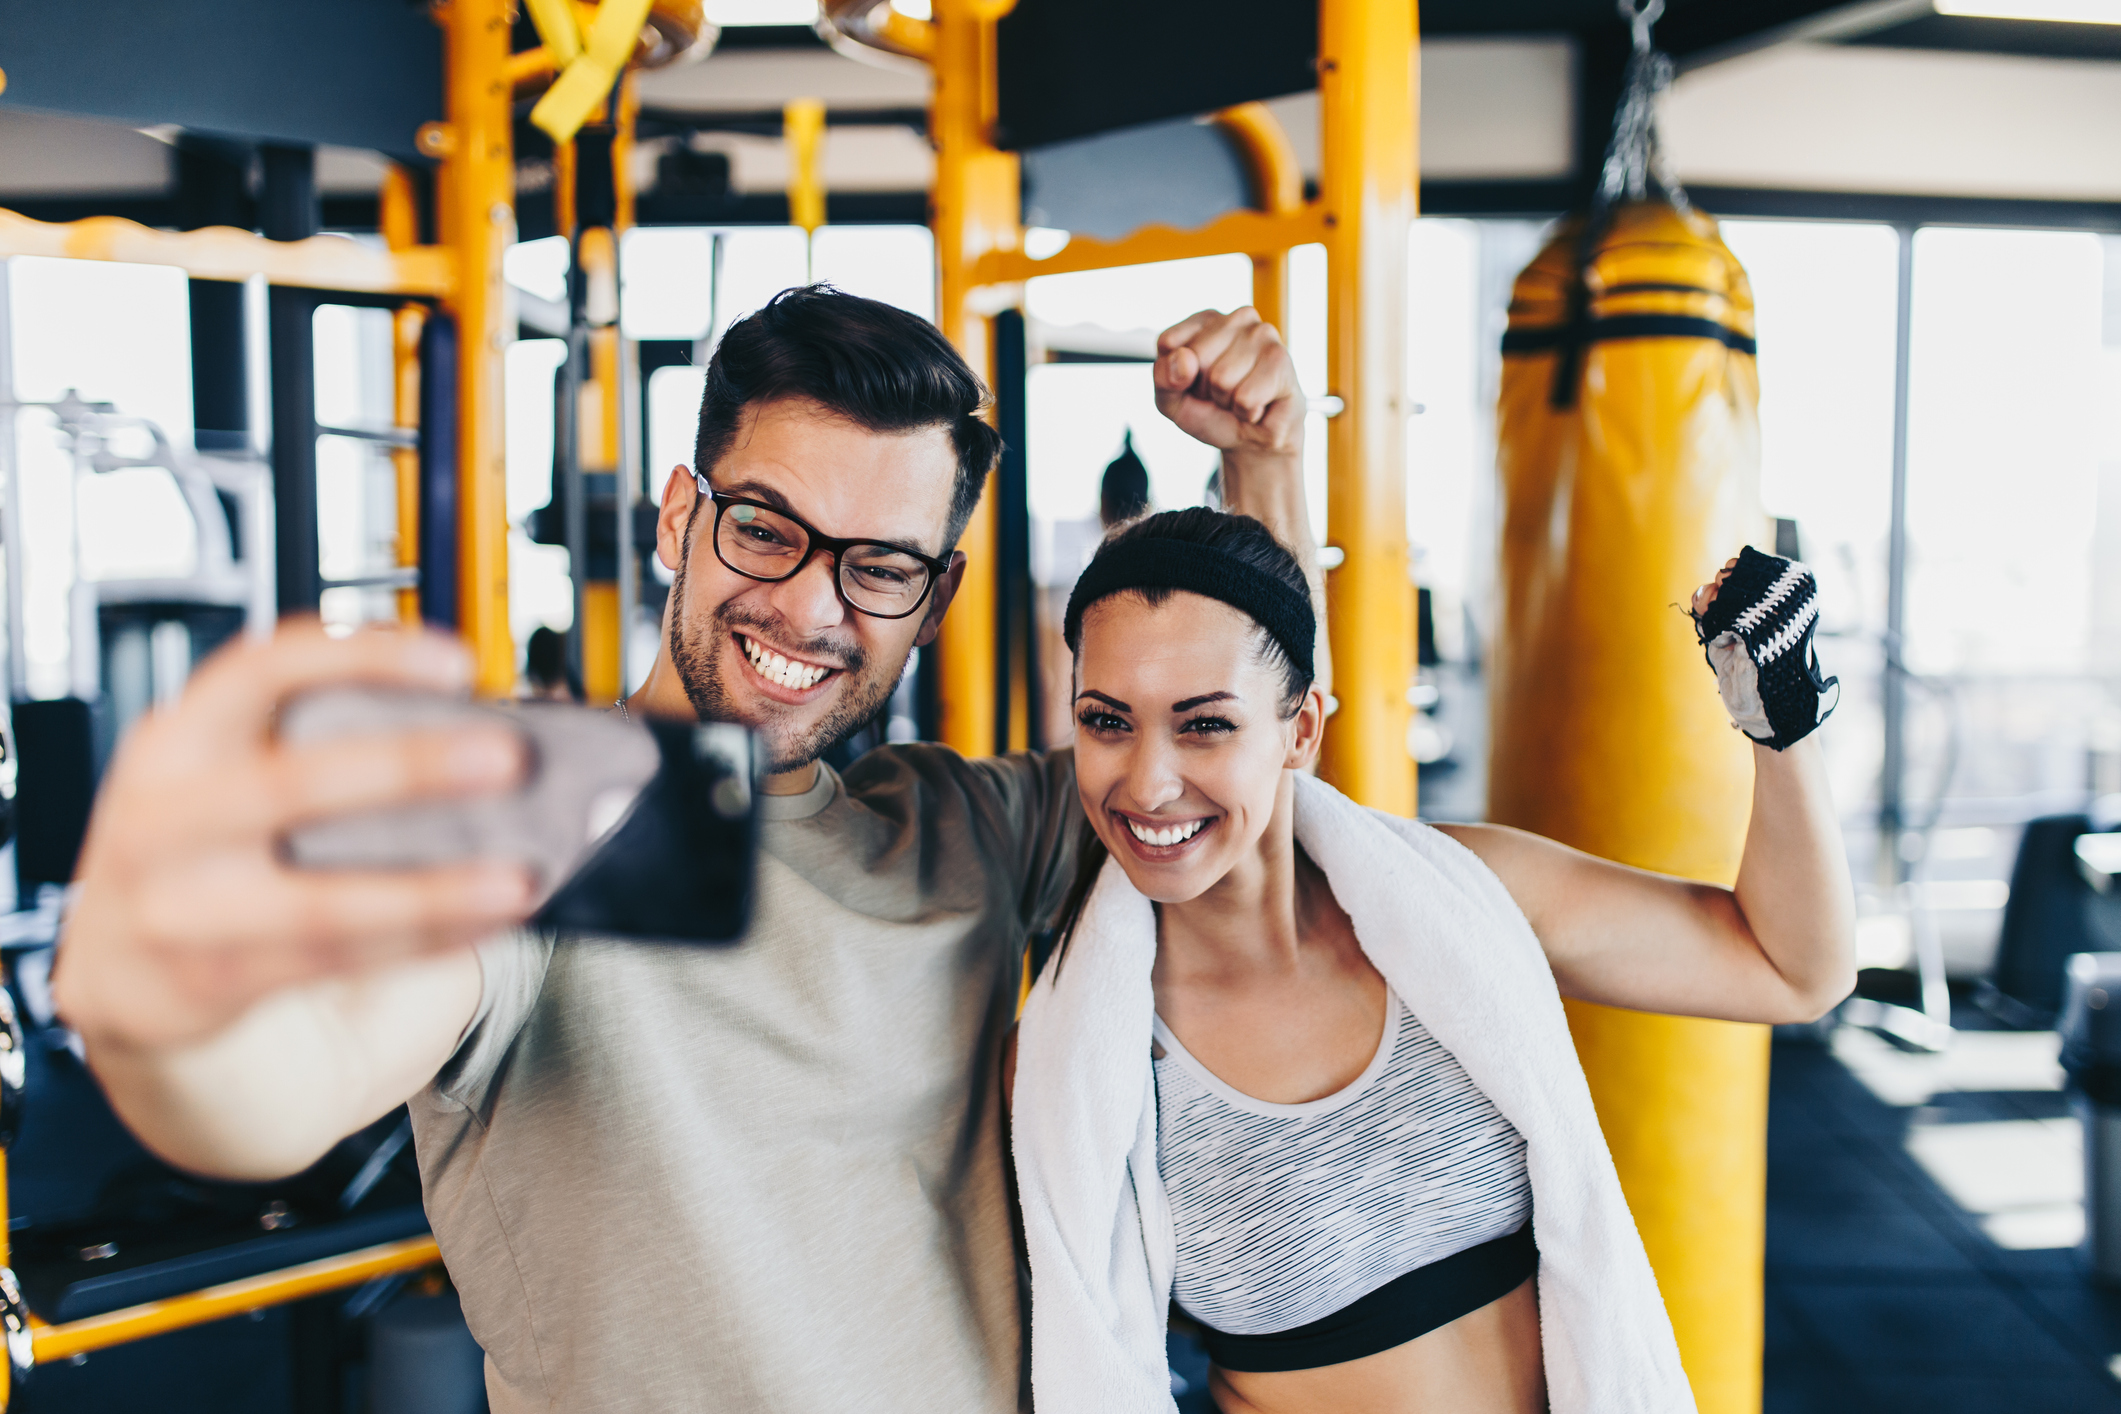 image of a man and a women taking a selfie while at the gym